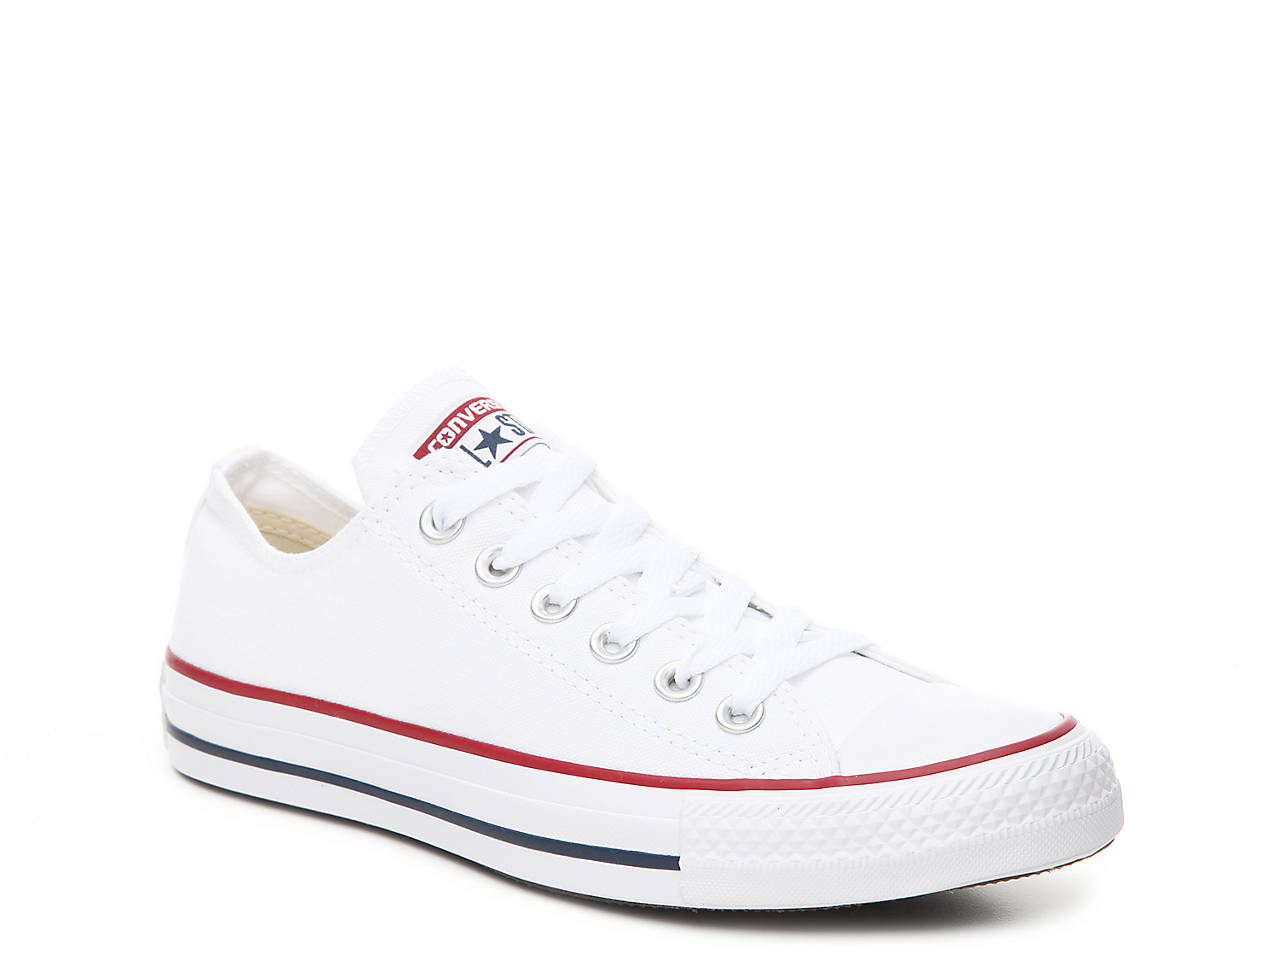 5d843bd2c31747 Converse All-Star High Tops   Sneakers